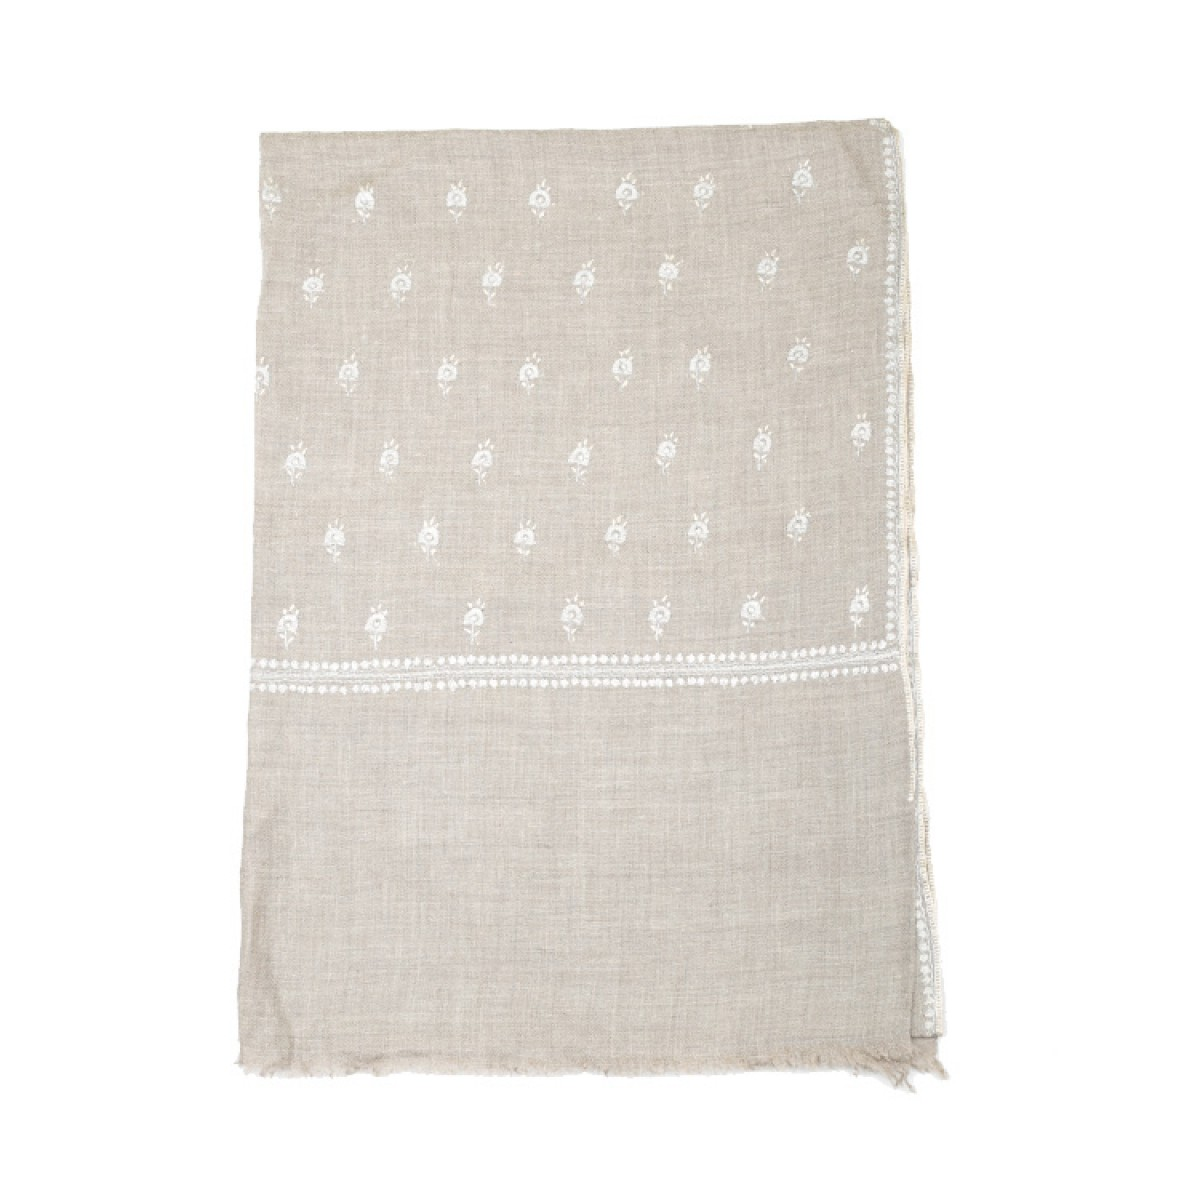 Embroidered Pashmina Stole - Oat Gray